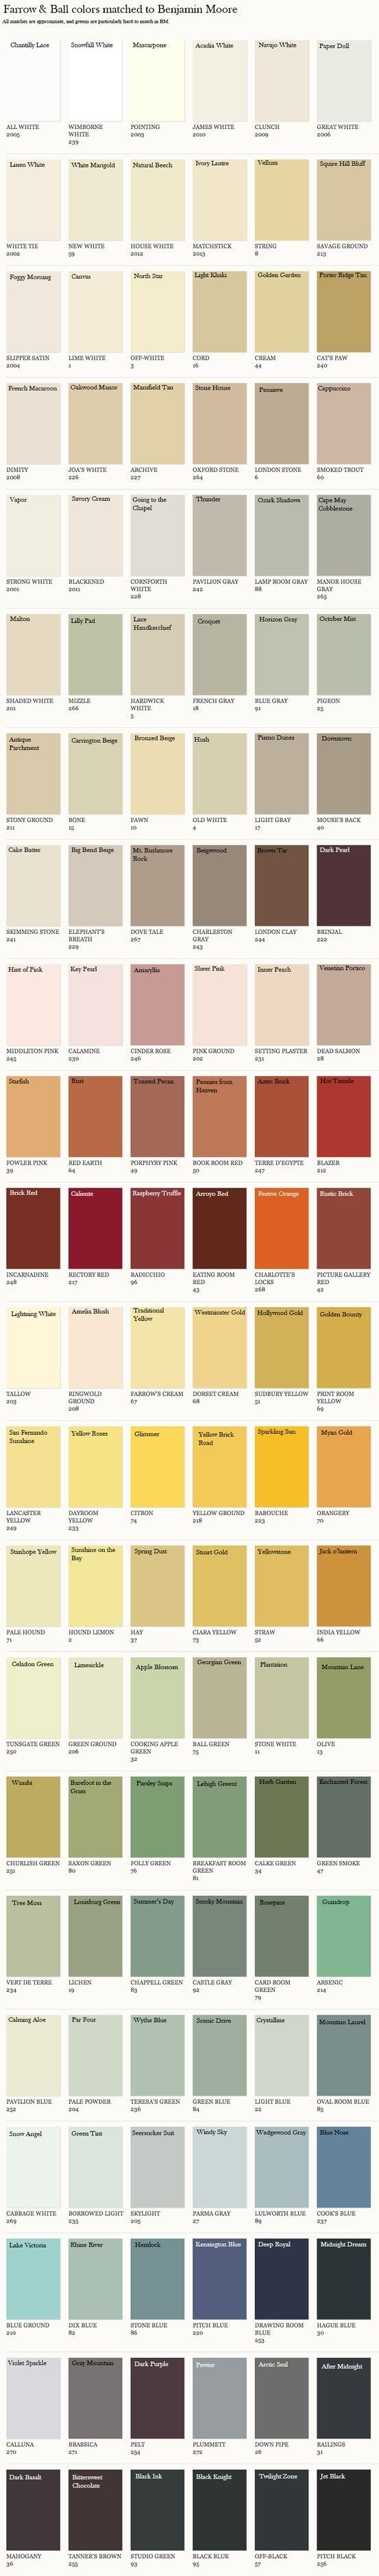 Pin By Liss Sterling On Paint Colors Pinterest